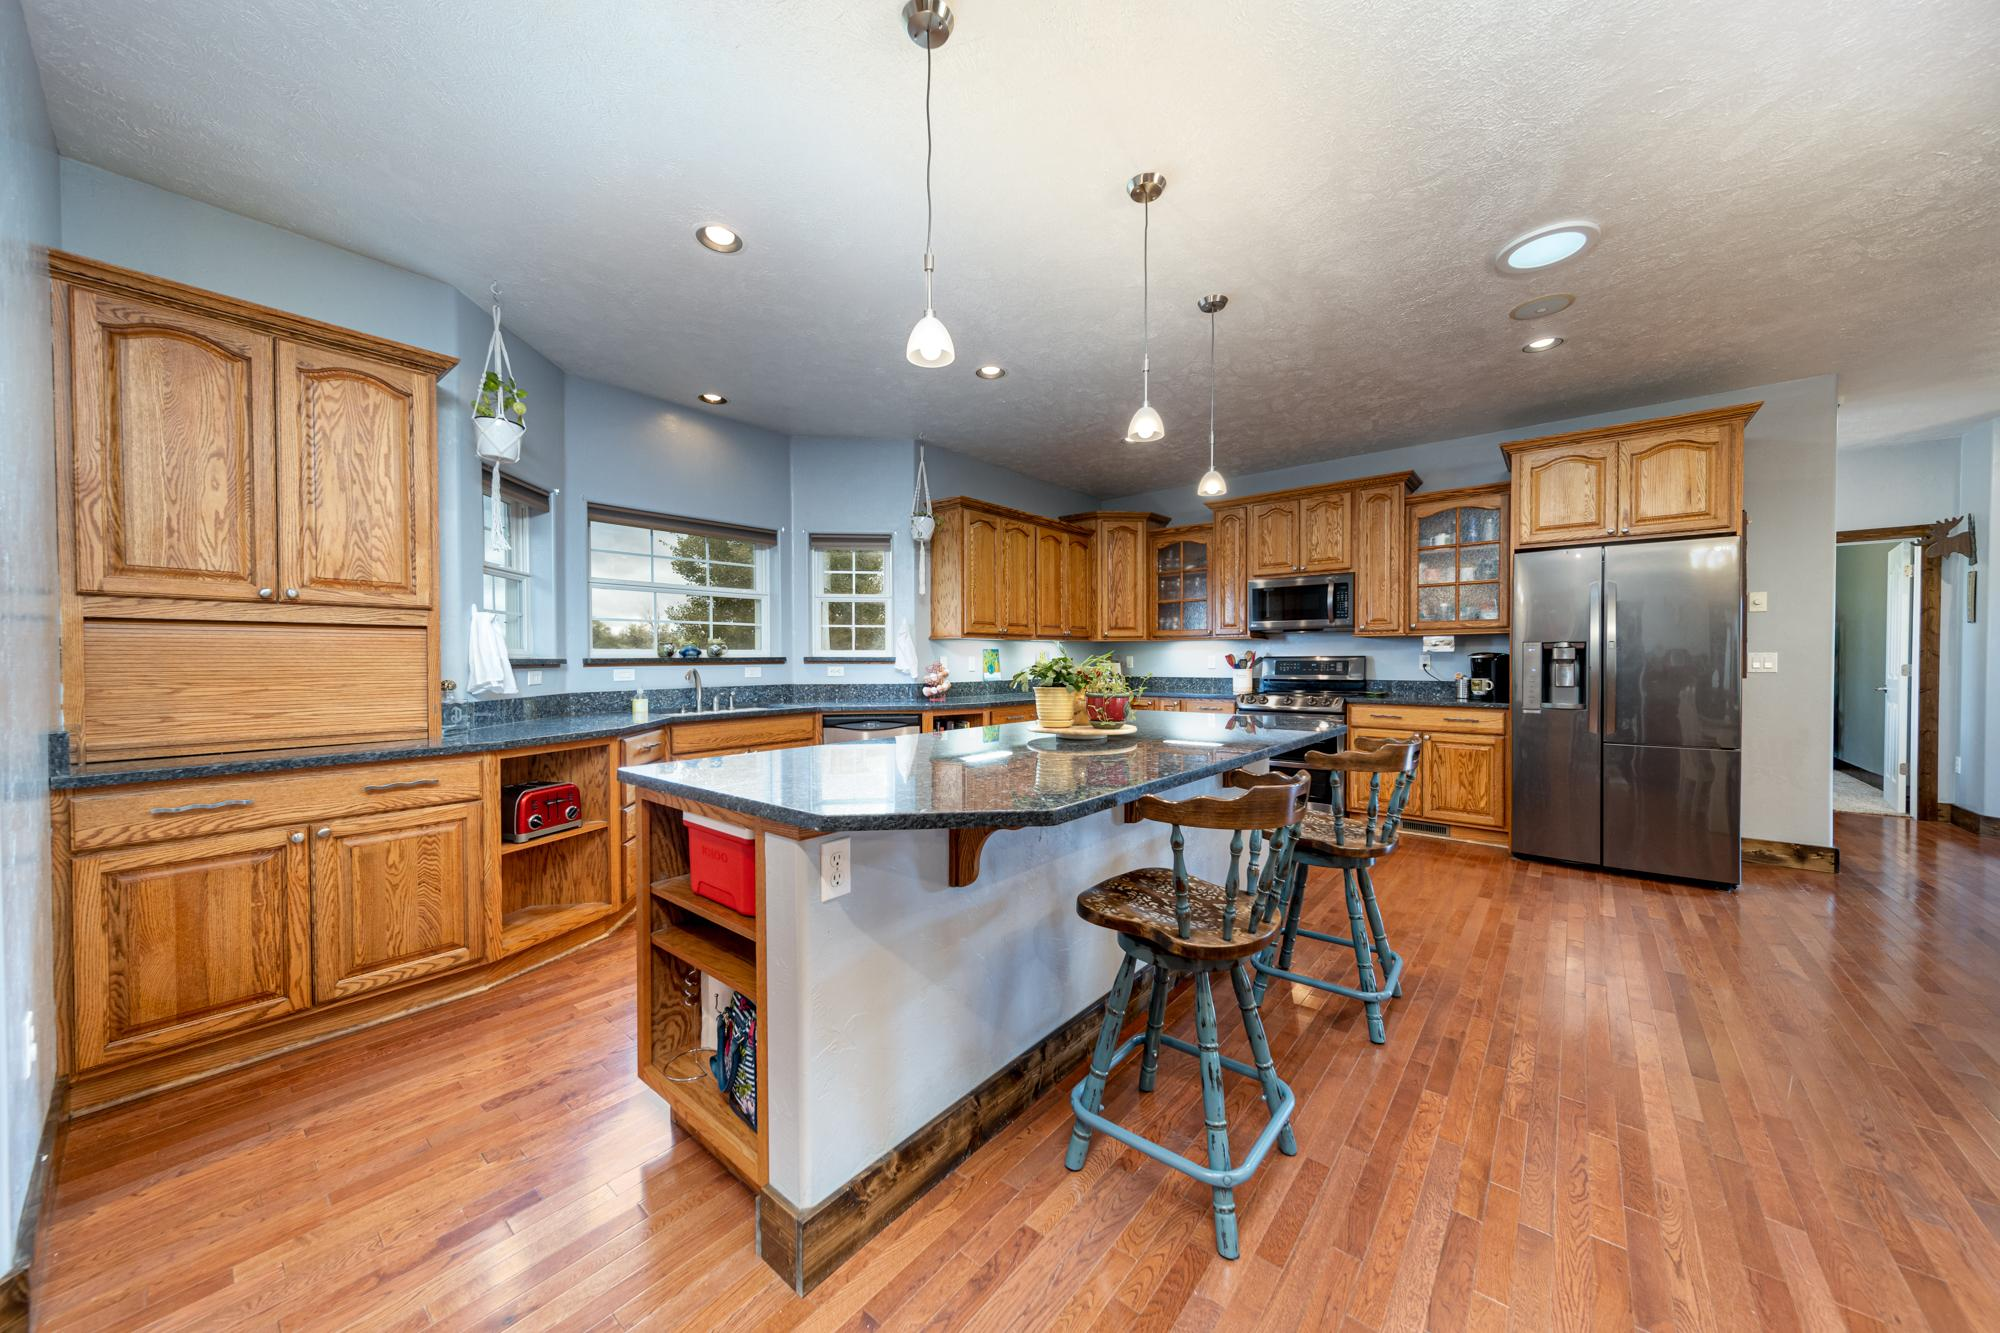 Kitchen Island - 12703 6100 Rd Montrose, CO 81403 - Atha Team Country Real Estate